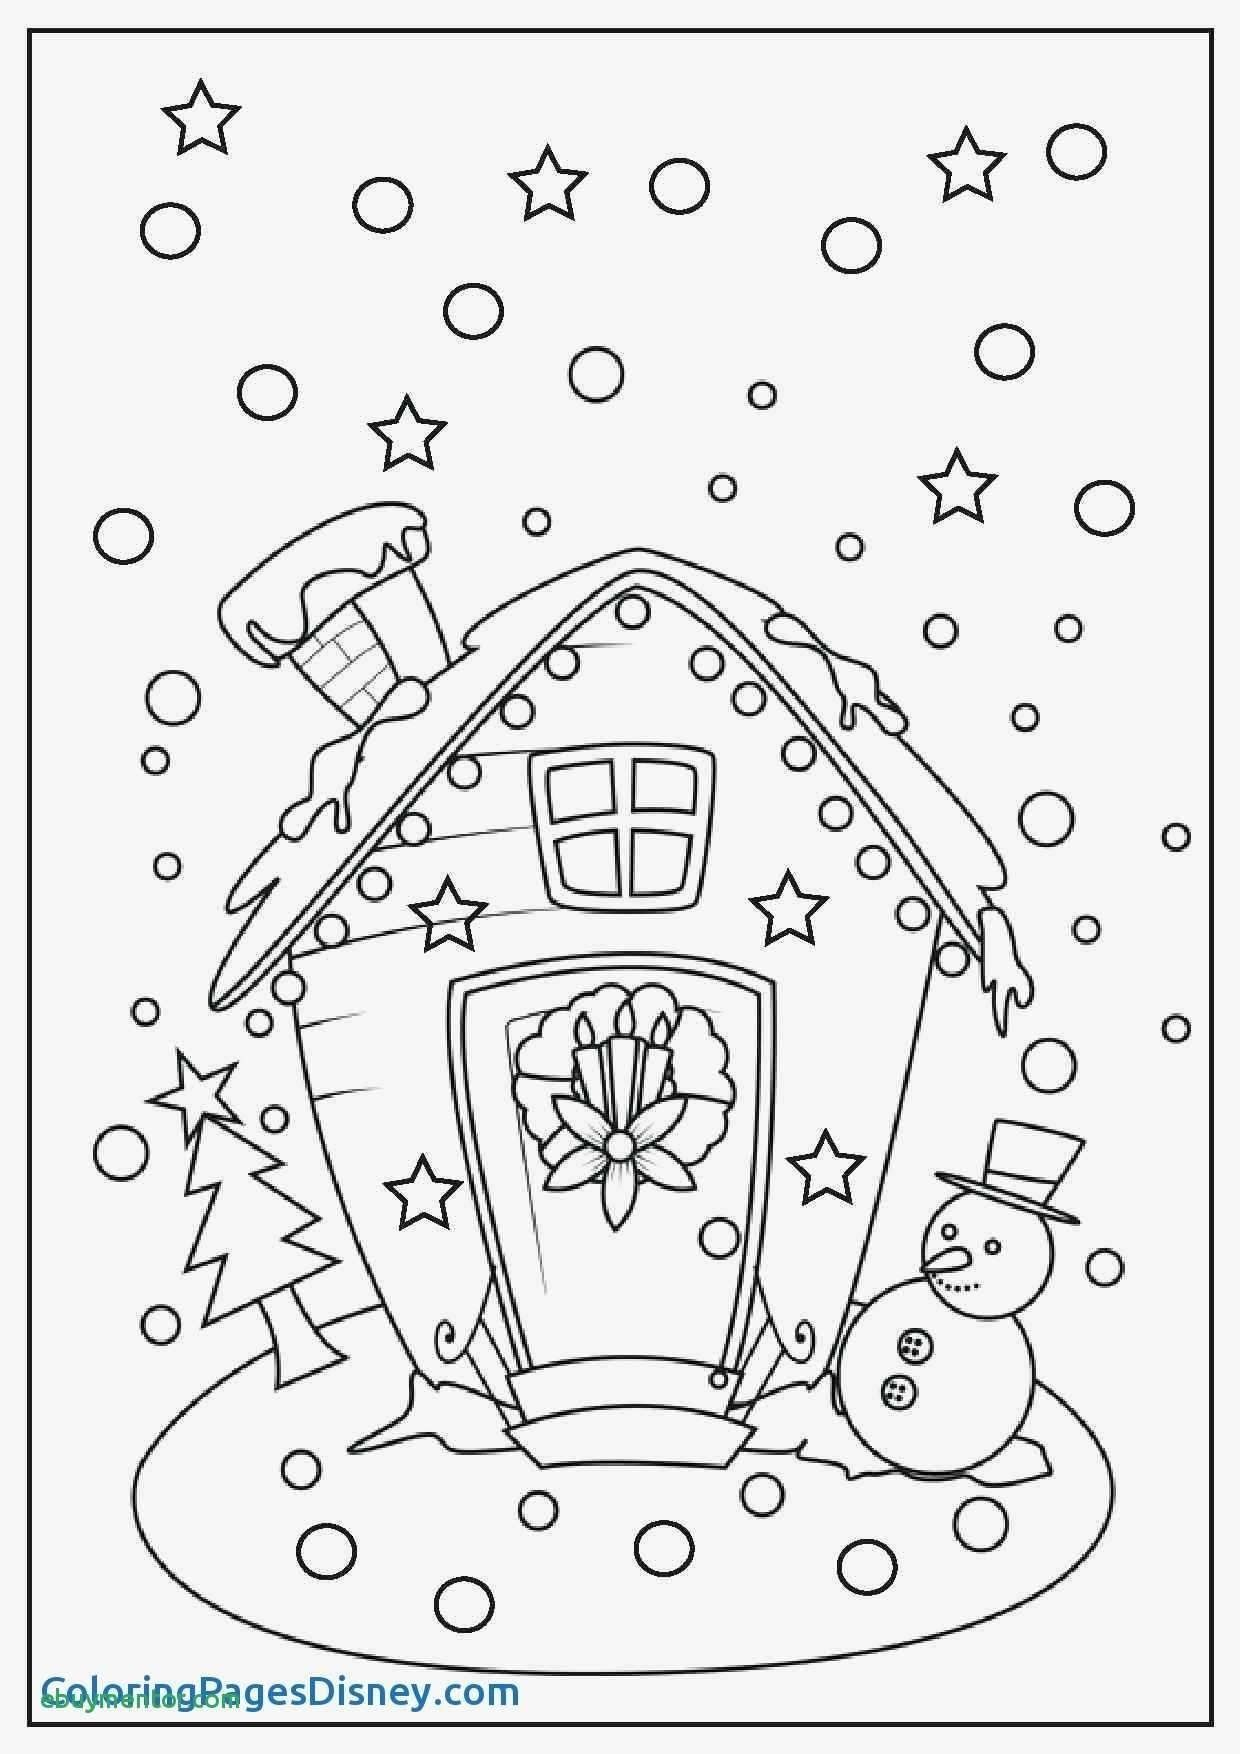 Abc Worksheets For Preschool To Printable Abc Worksheets